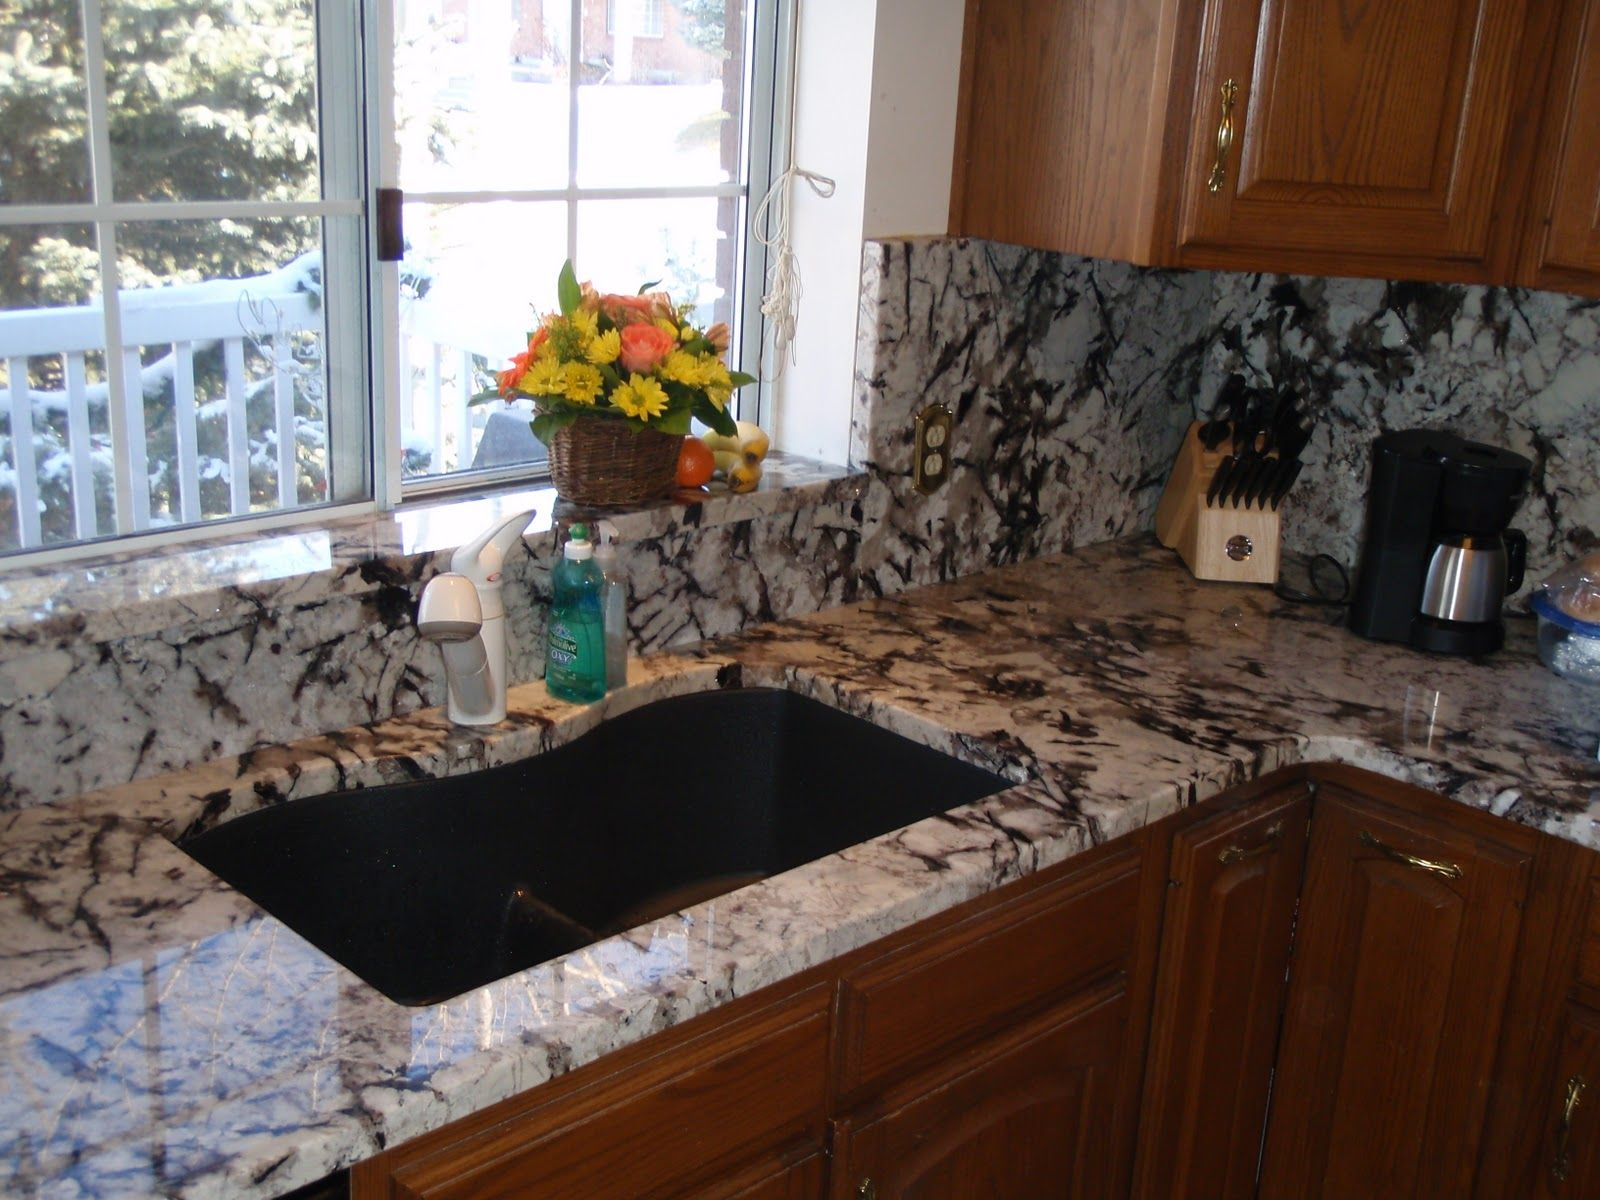 Affordable Custom Cabinets and Granite Countertops ... on Granite Countertops With Backsplash  id=33126